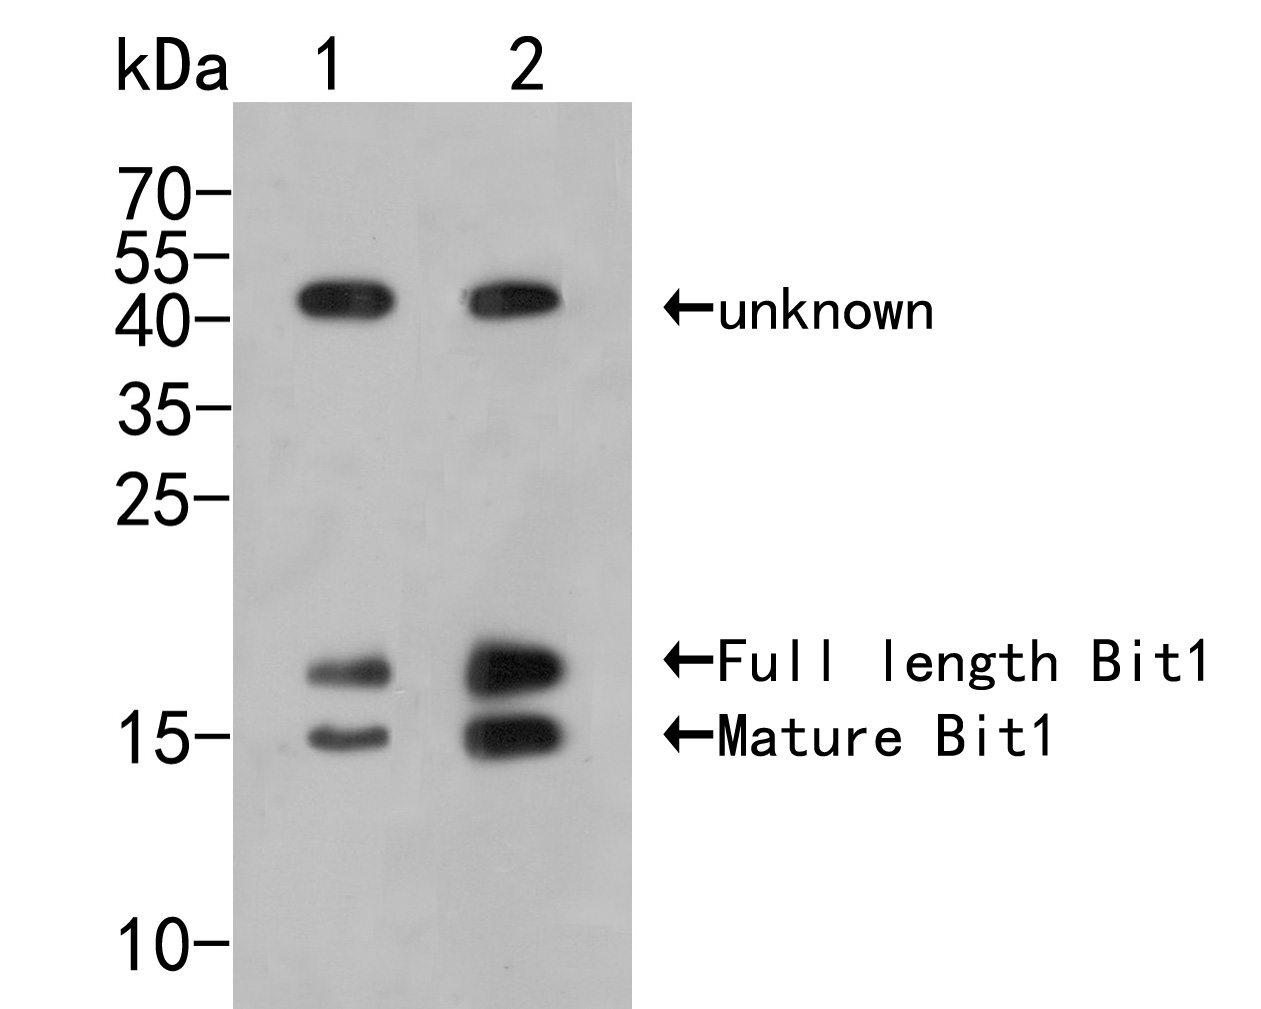 Western blot analysis of Bit1 on different lysates. Proteins were transferred to a PVDF membrane and blocked with 5% BSA in PBS for 1 hour at room temperature. The primary antibody (ER2001-71, 1/500) was used in 5% BSA at room temperature for 2 hours. Goat Anti-Rabbit IgG - HRP Secondary Antibody (HA1001) at 1:5,000 dilution was used for 1 hour at room temperature.<br /> Positive control: <br /> Lane 1: PC-3M cell lysate<br /> Lane 2: MCF-7 cell lysate